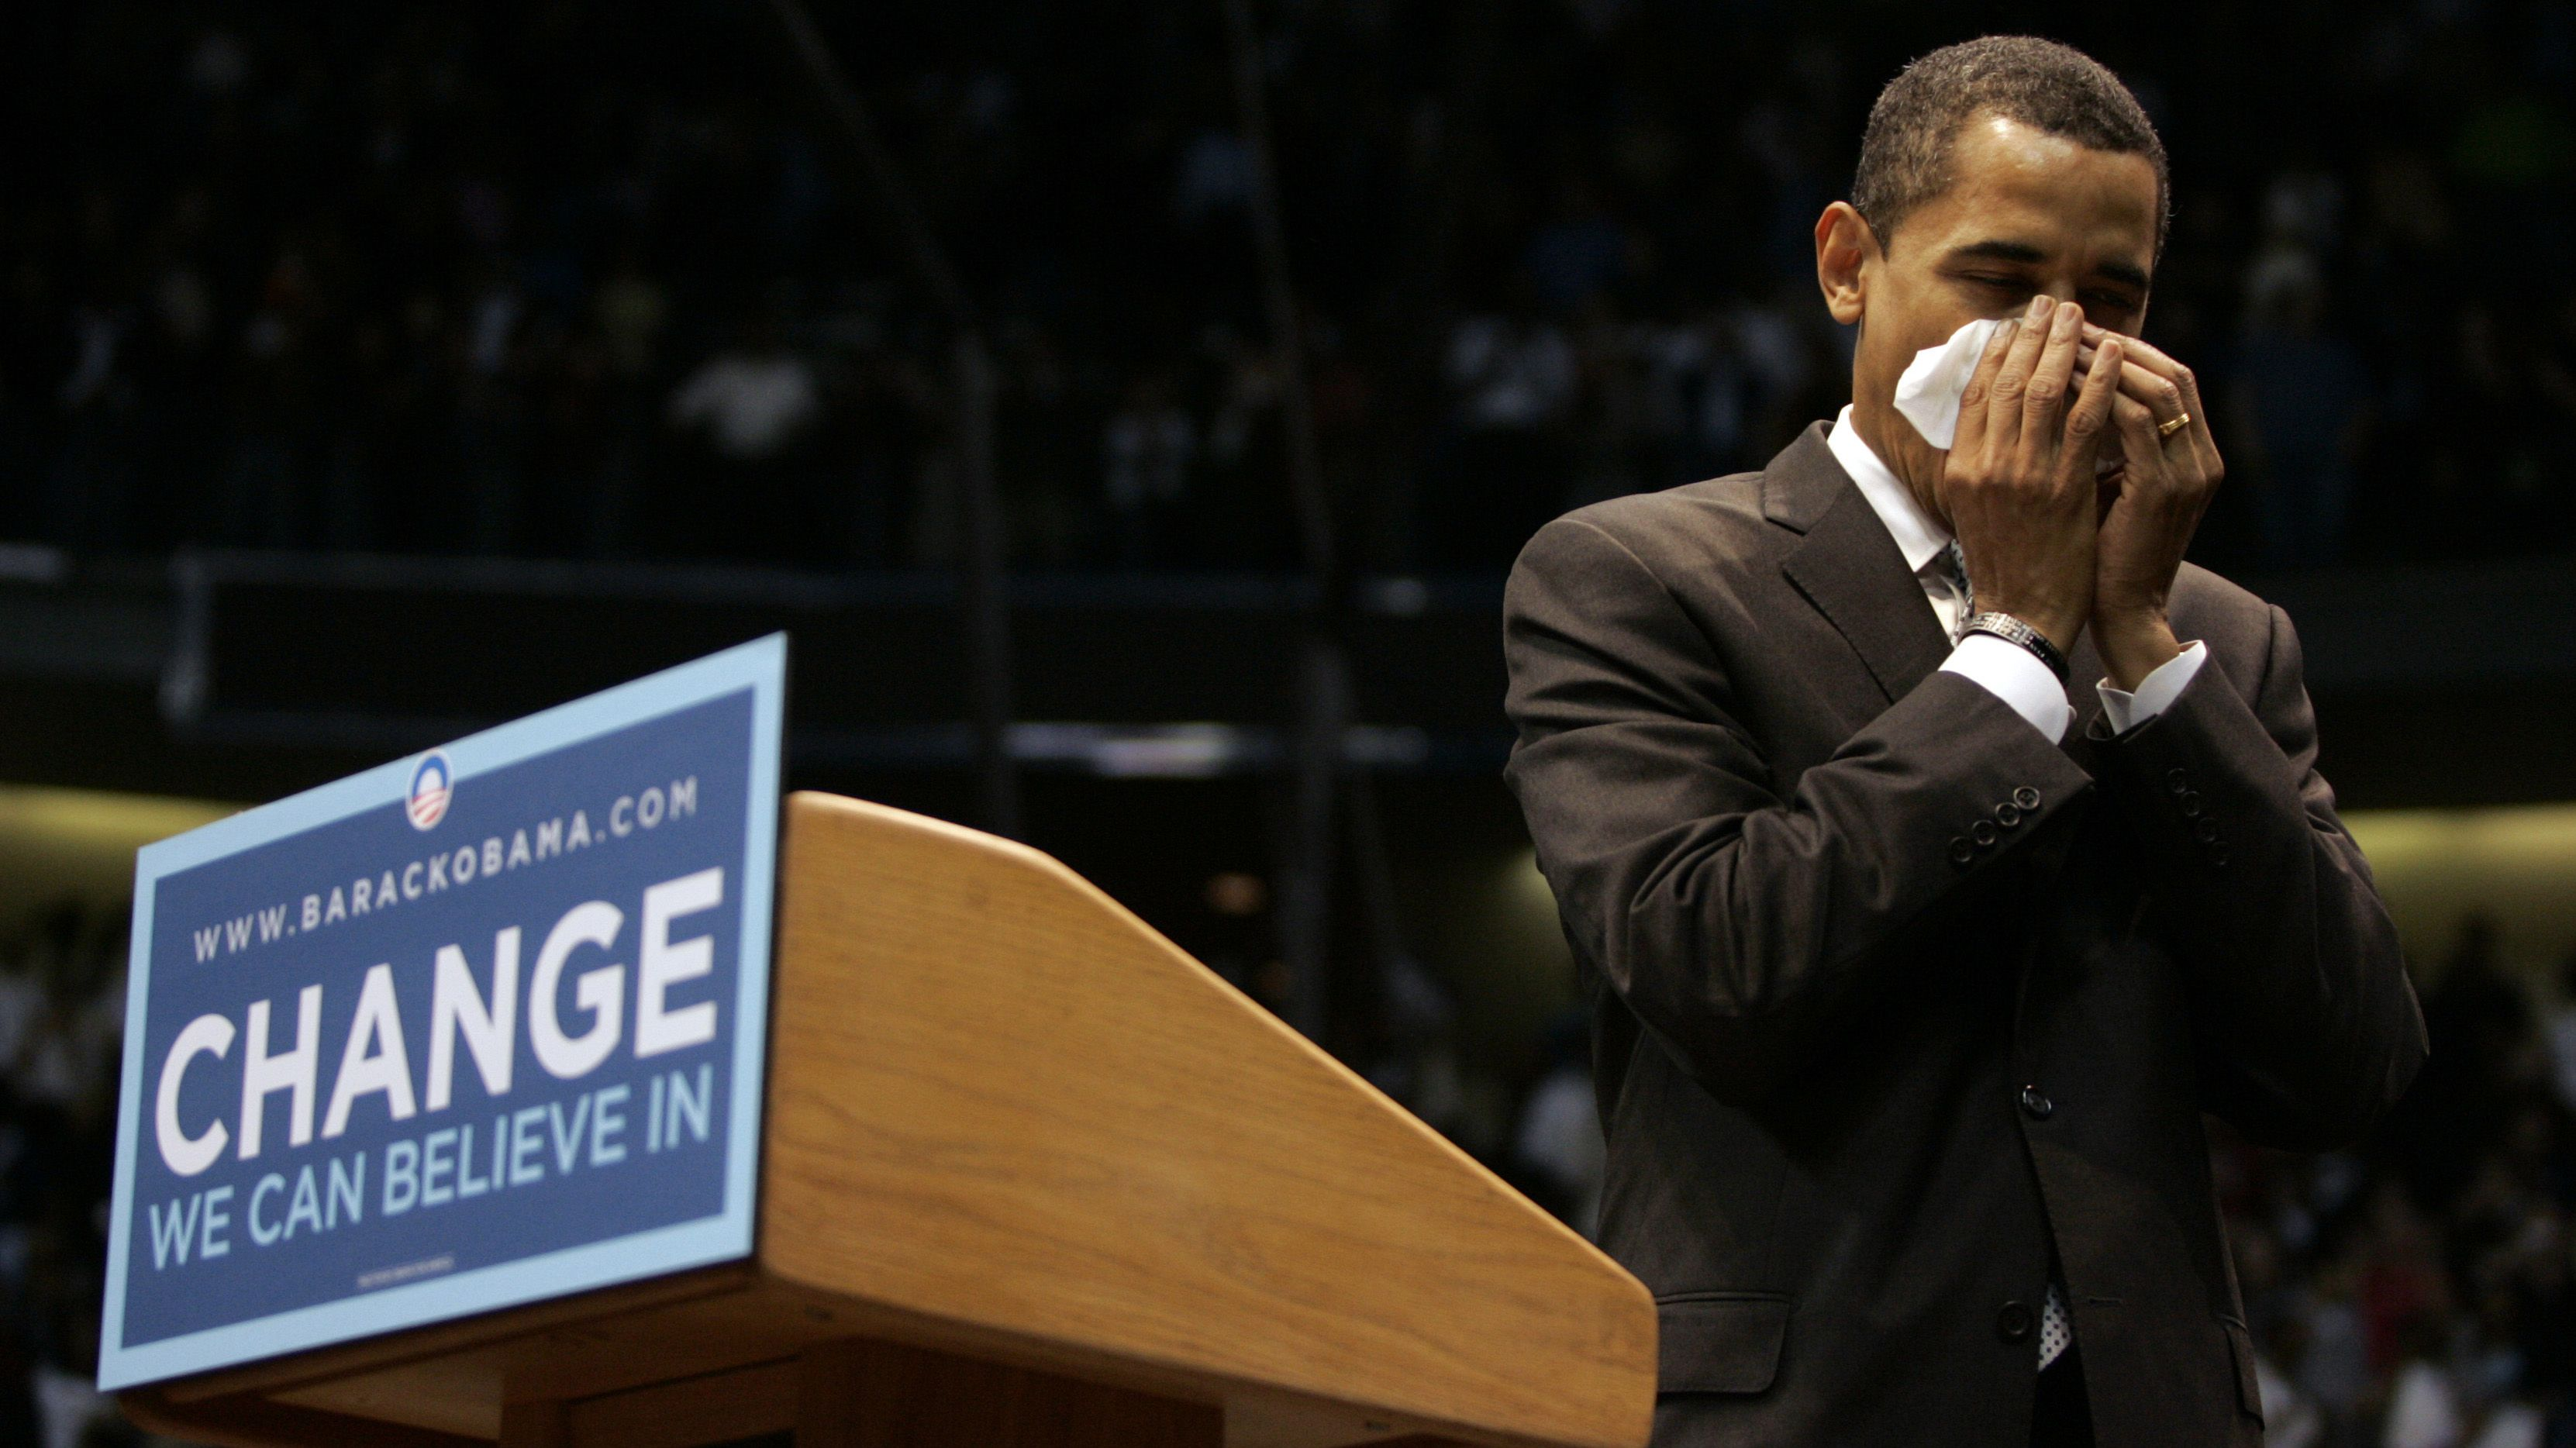 Democratic presidential candidate Senator Barack Obama (D-IL) blows his nose at a rally in Dallas, Texas February 20, 2008. REUTERS/Jessica Rinaldi (UNITED STATES) US PRESIDENTIAL ELECTION CAMPAIGN 2008 (USA) - RTR1XCFR